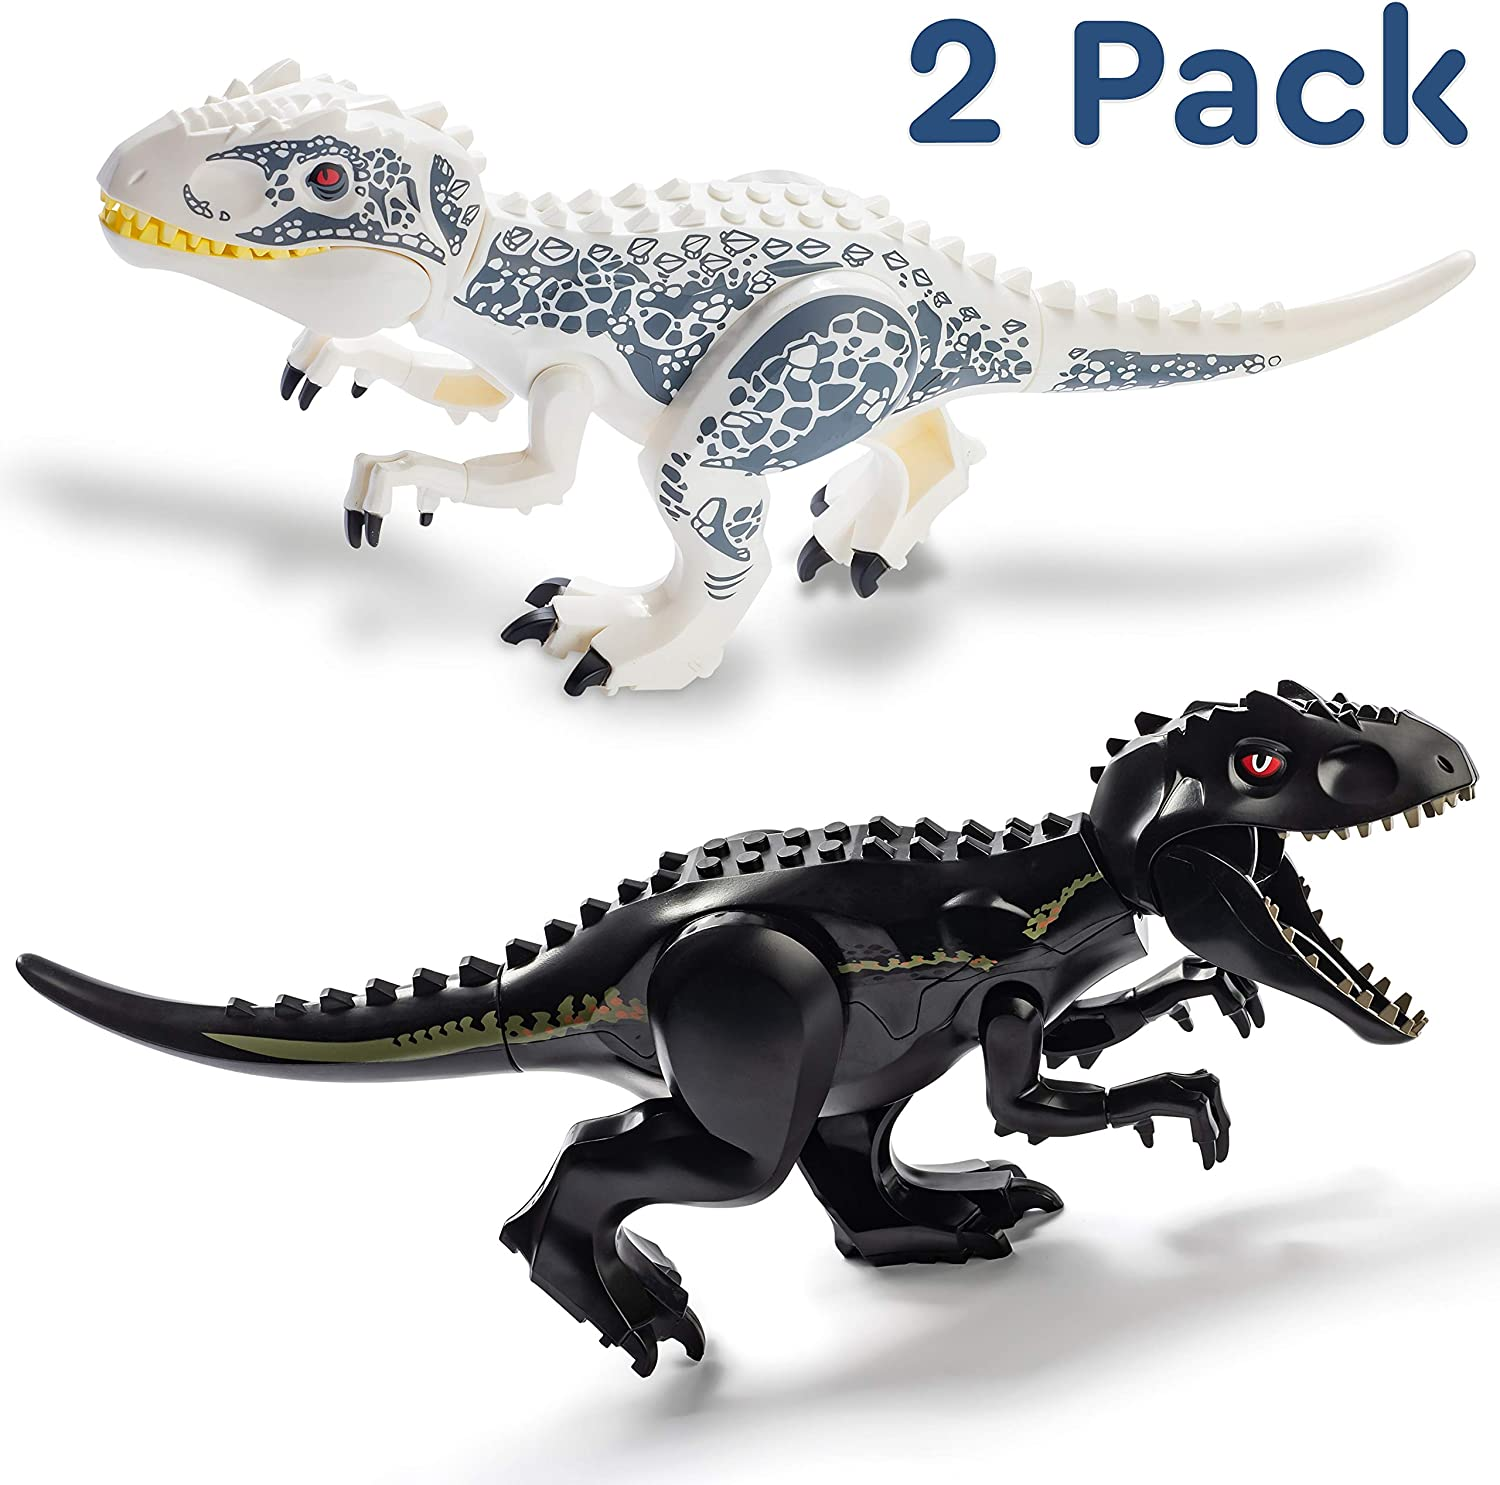 LEGO Lot of 2 Black Dinosaur Animal Tail Parts and Pieces